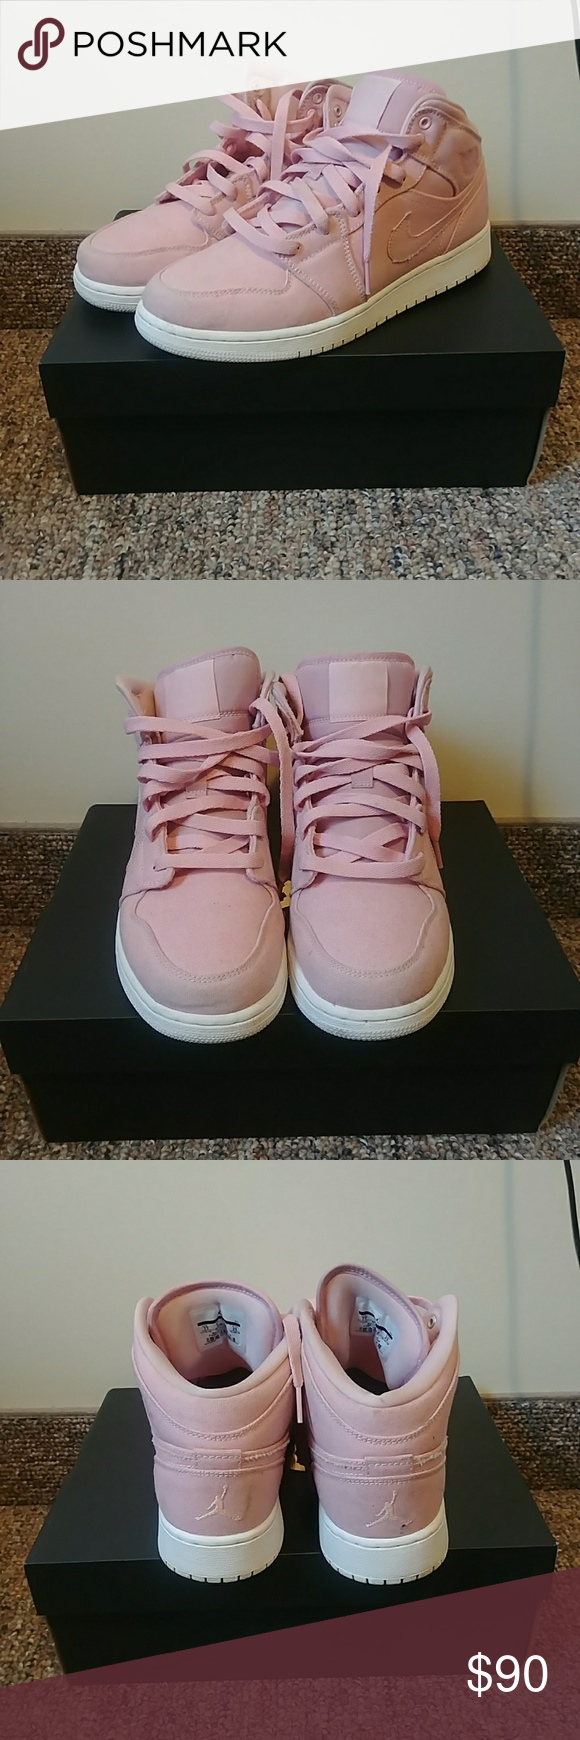 Air Jordan 1 Mid Easter Pack Pink Used Condition 9 10 Size 7Y Women s Jordan  Shoes Athletic Shoes 87ff538b7